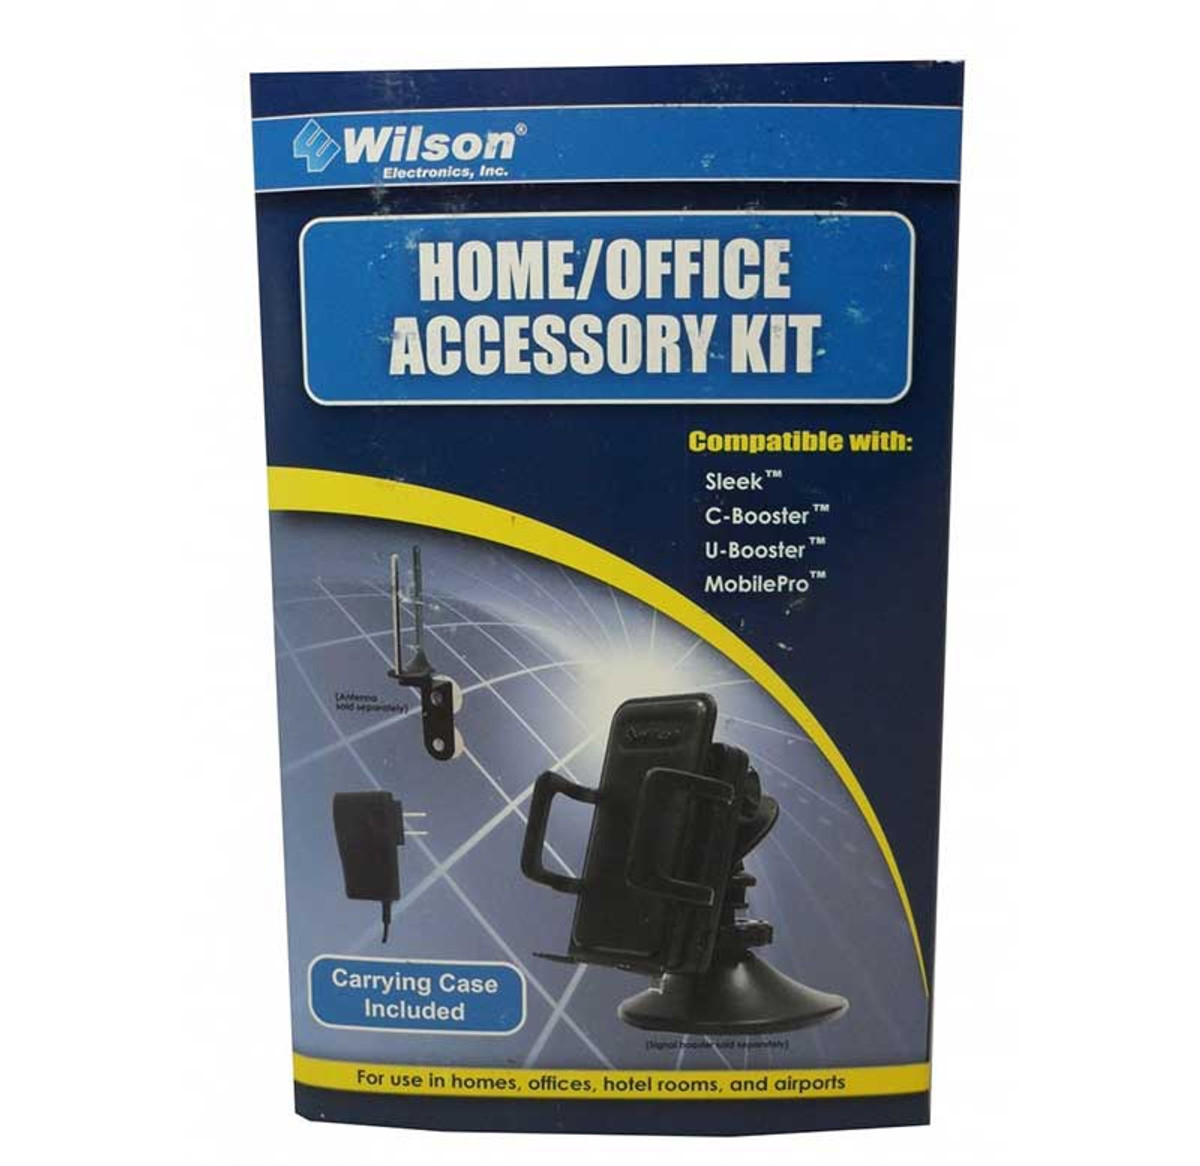 Wilson 859970 Home & Office Accessory Kit for use with Sleek amplifiers, front of retail box